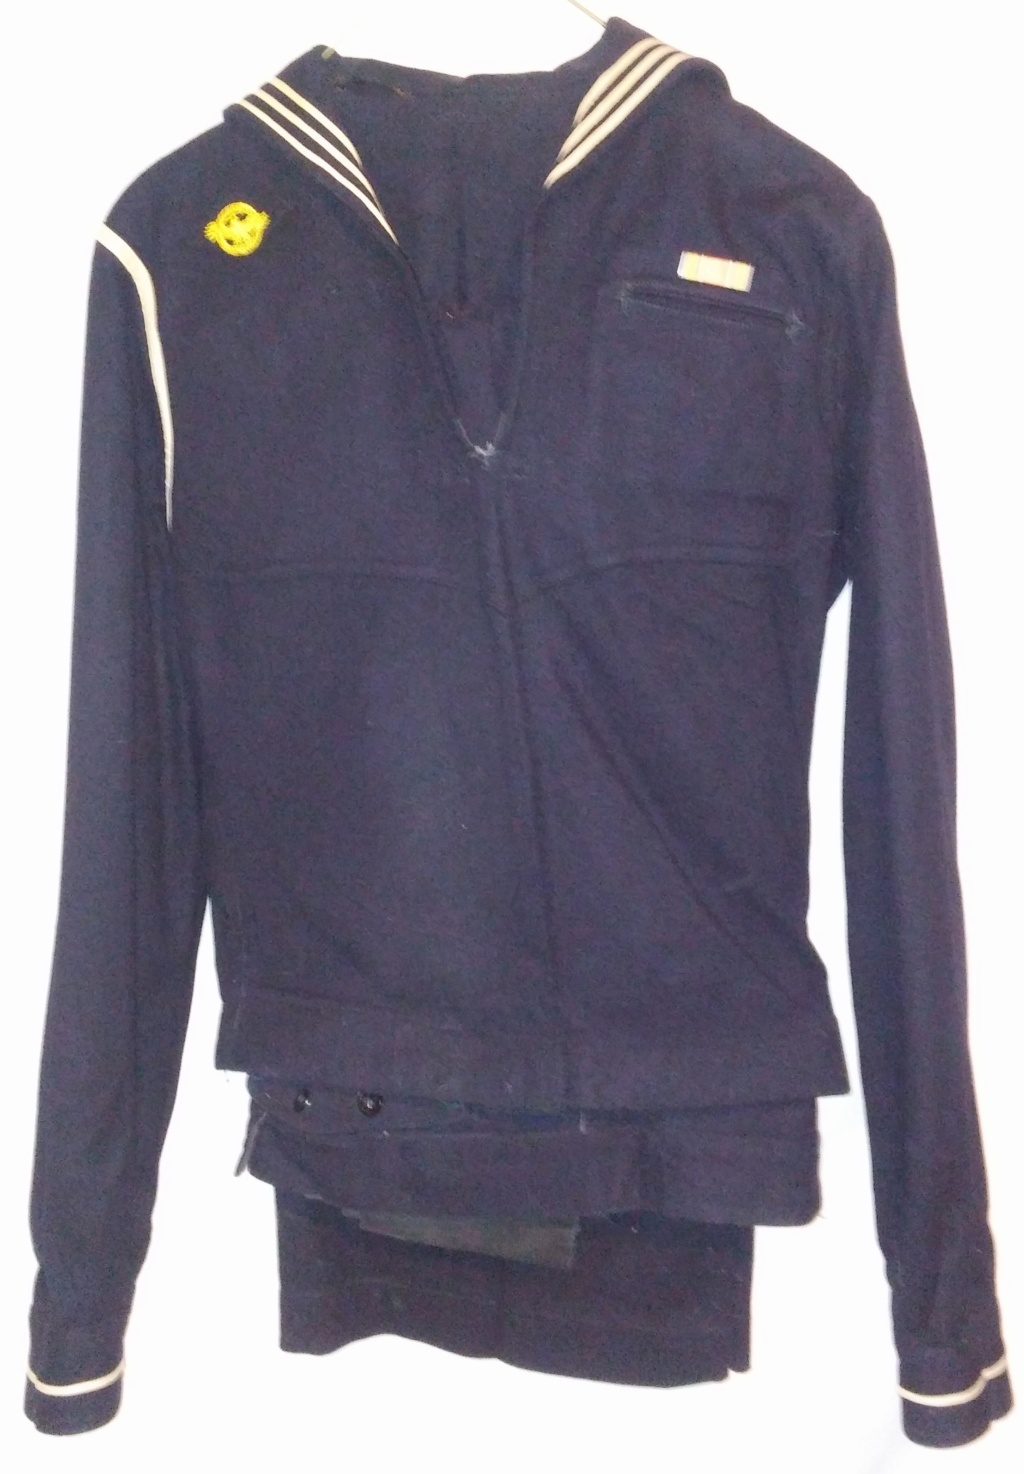 My Navy Jumper Collection 19700311